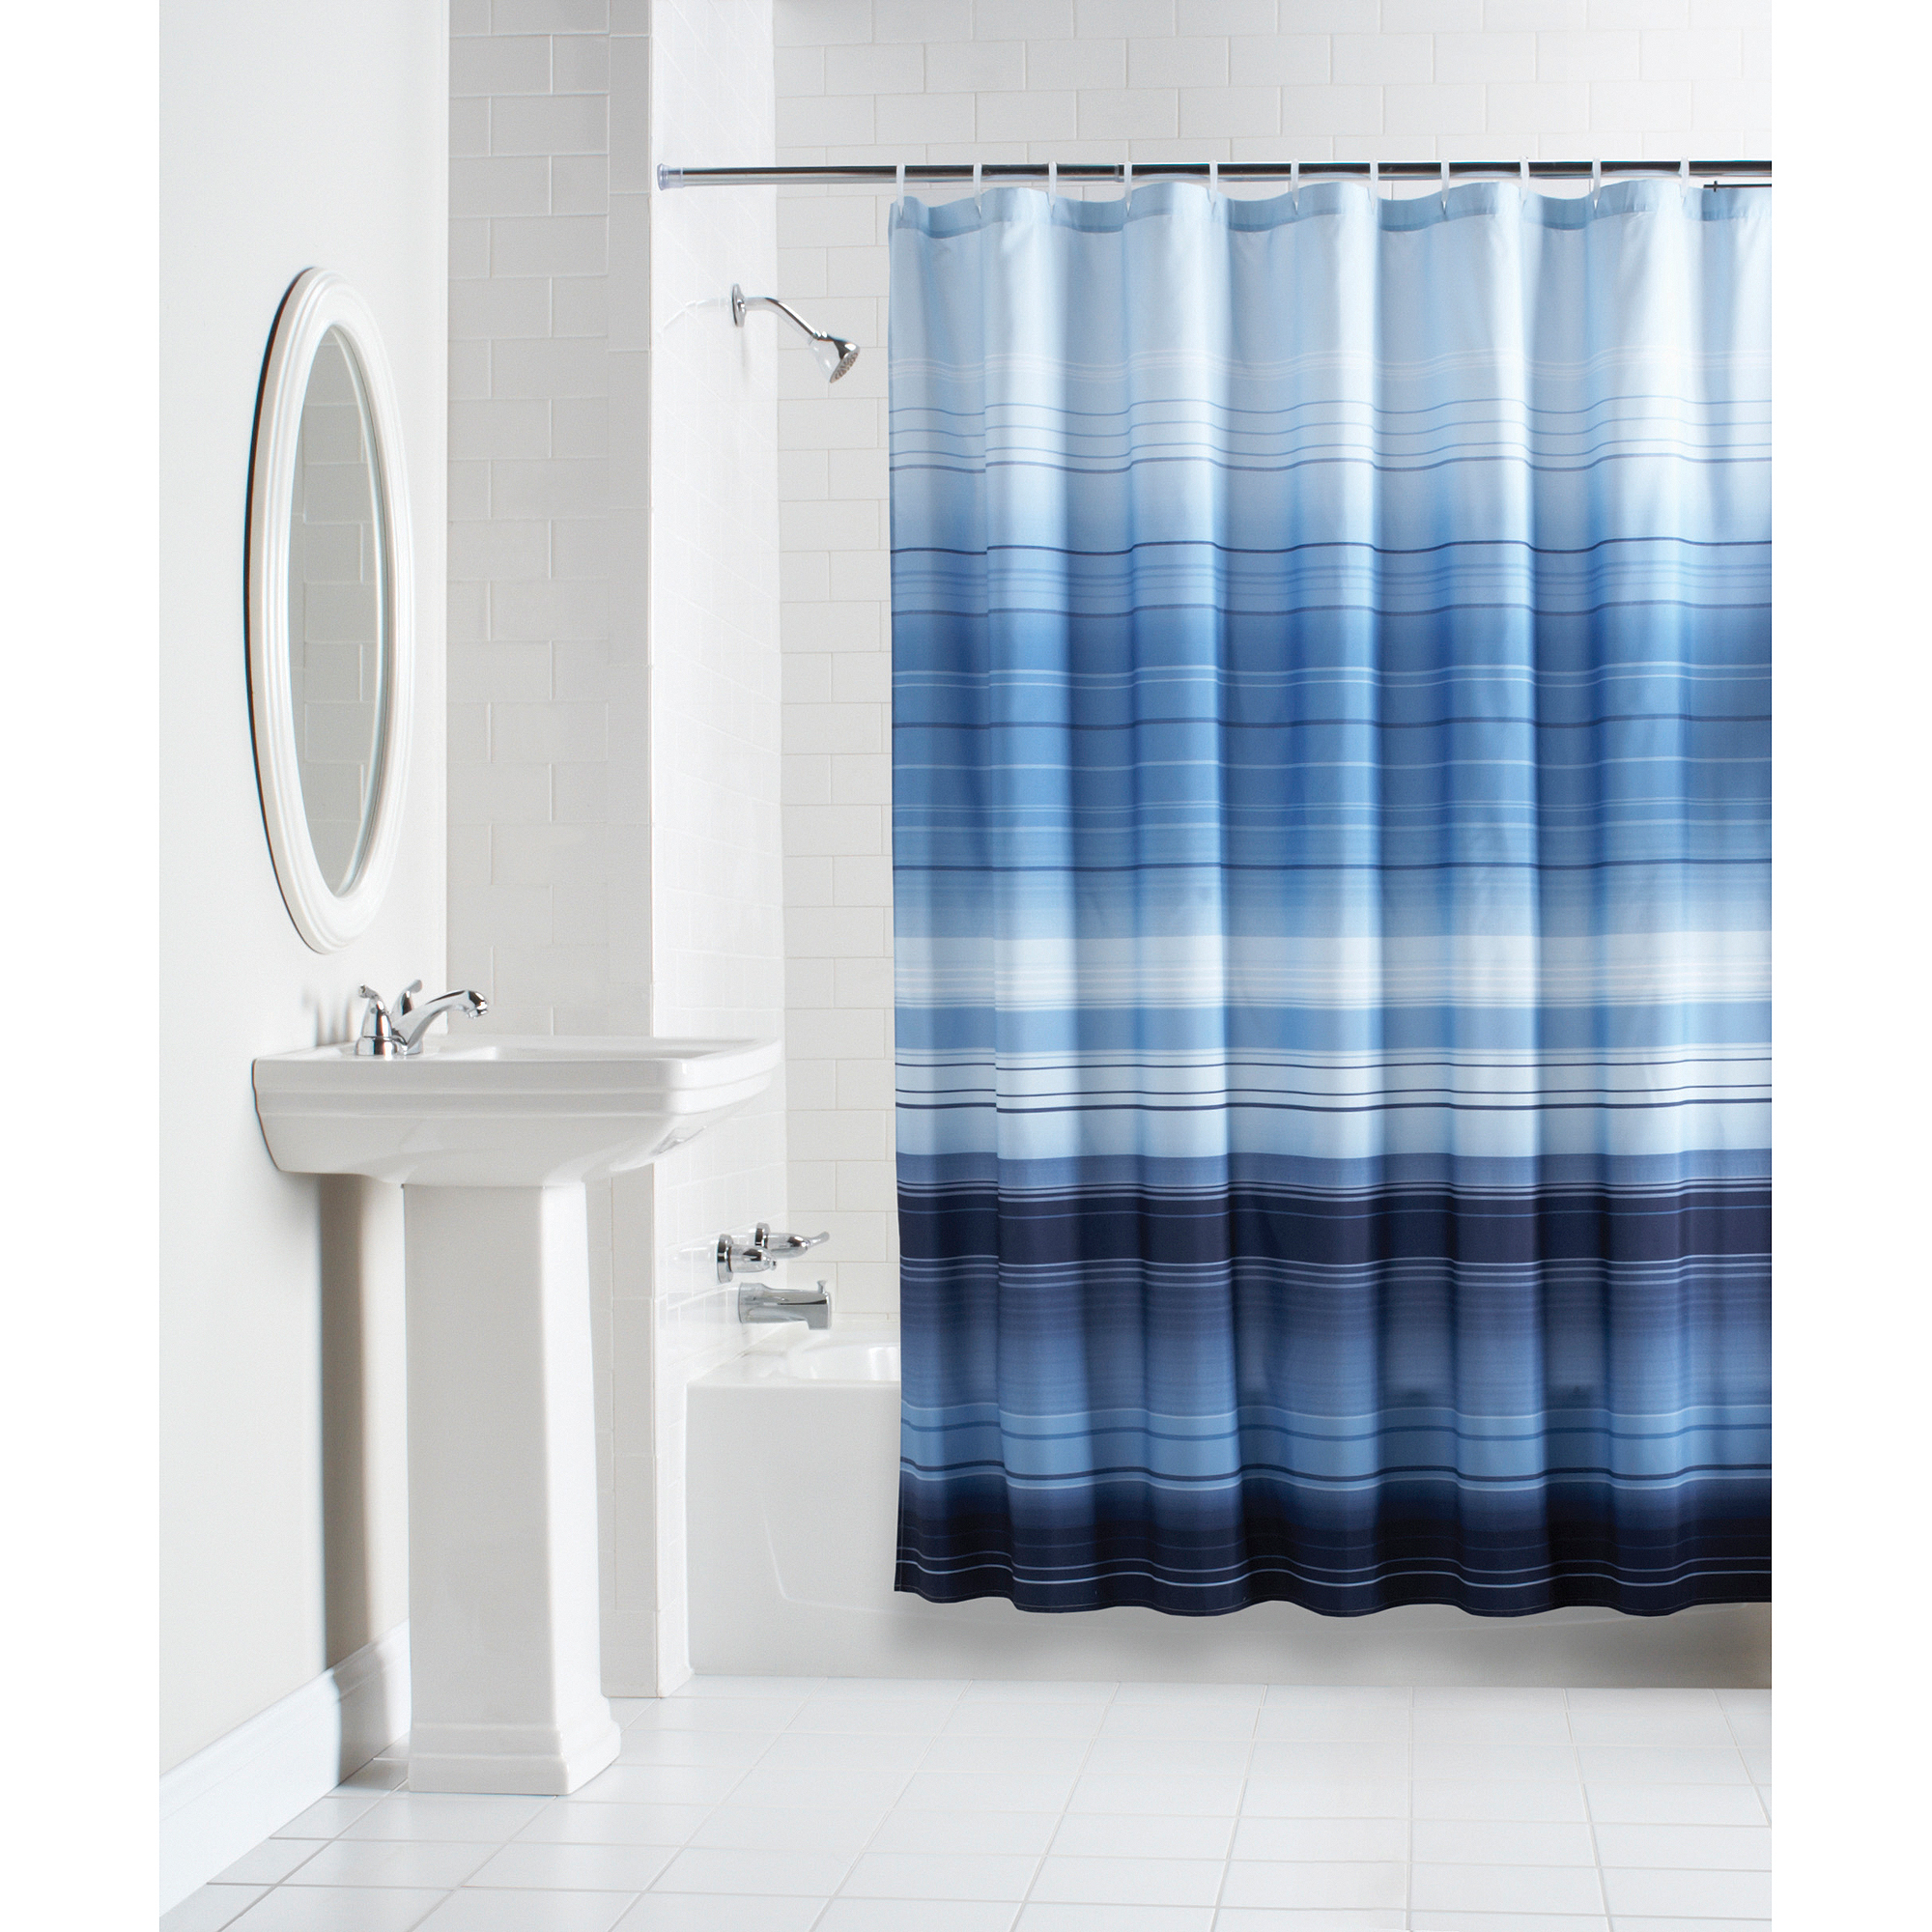 Fabric Shower Curtains with regard to dimensions 2000 X 2000